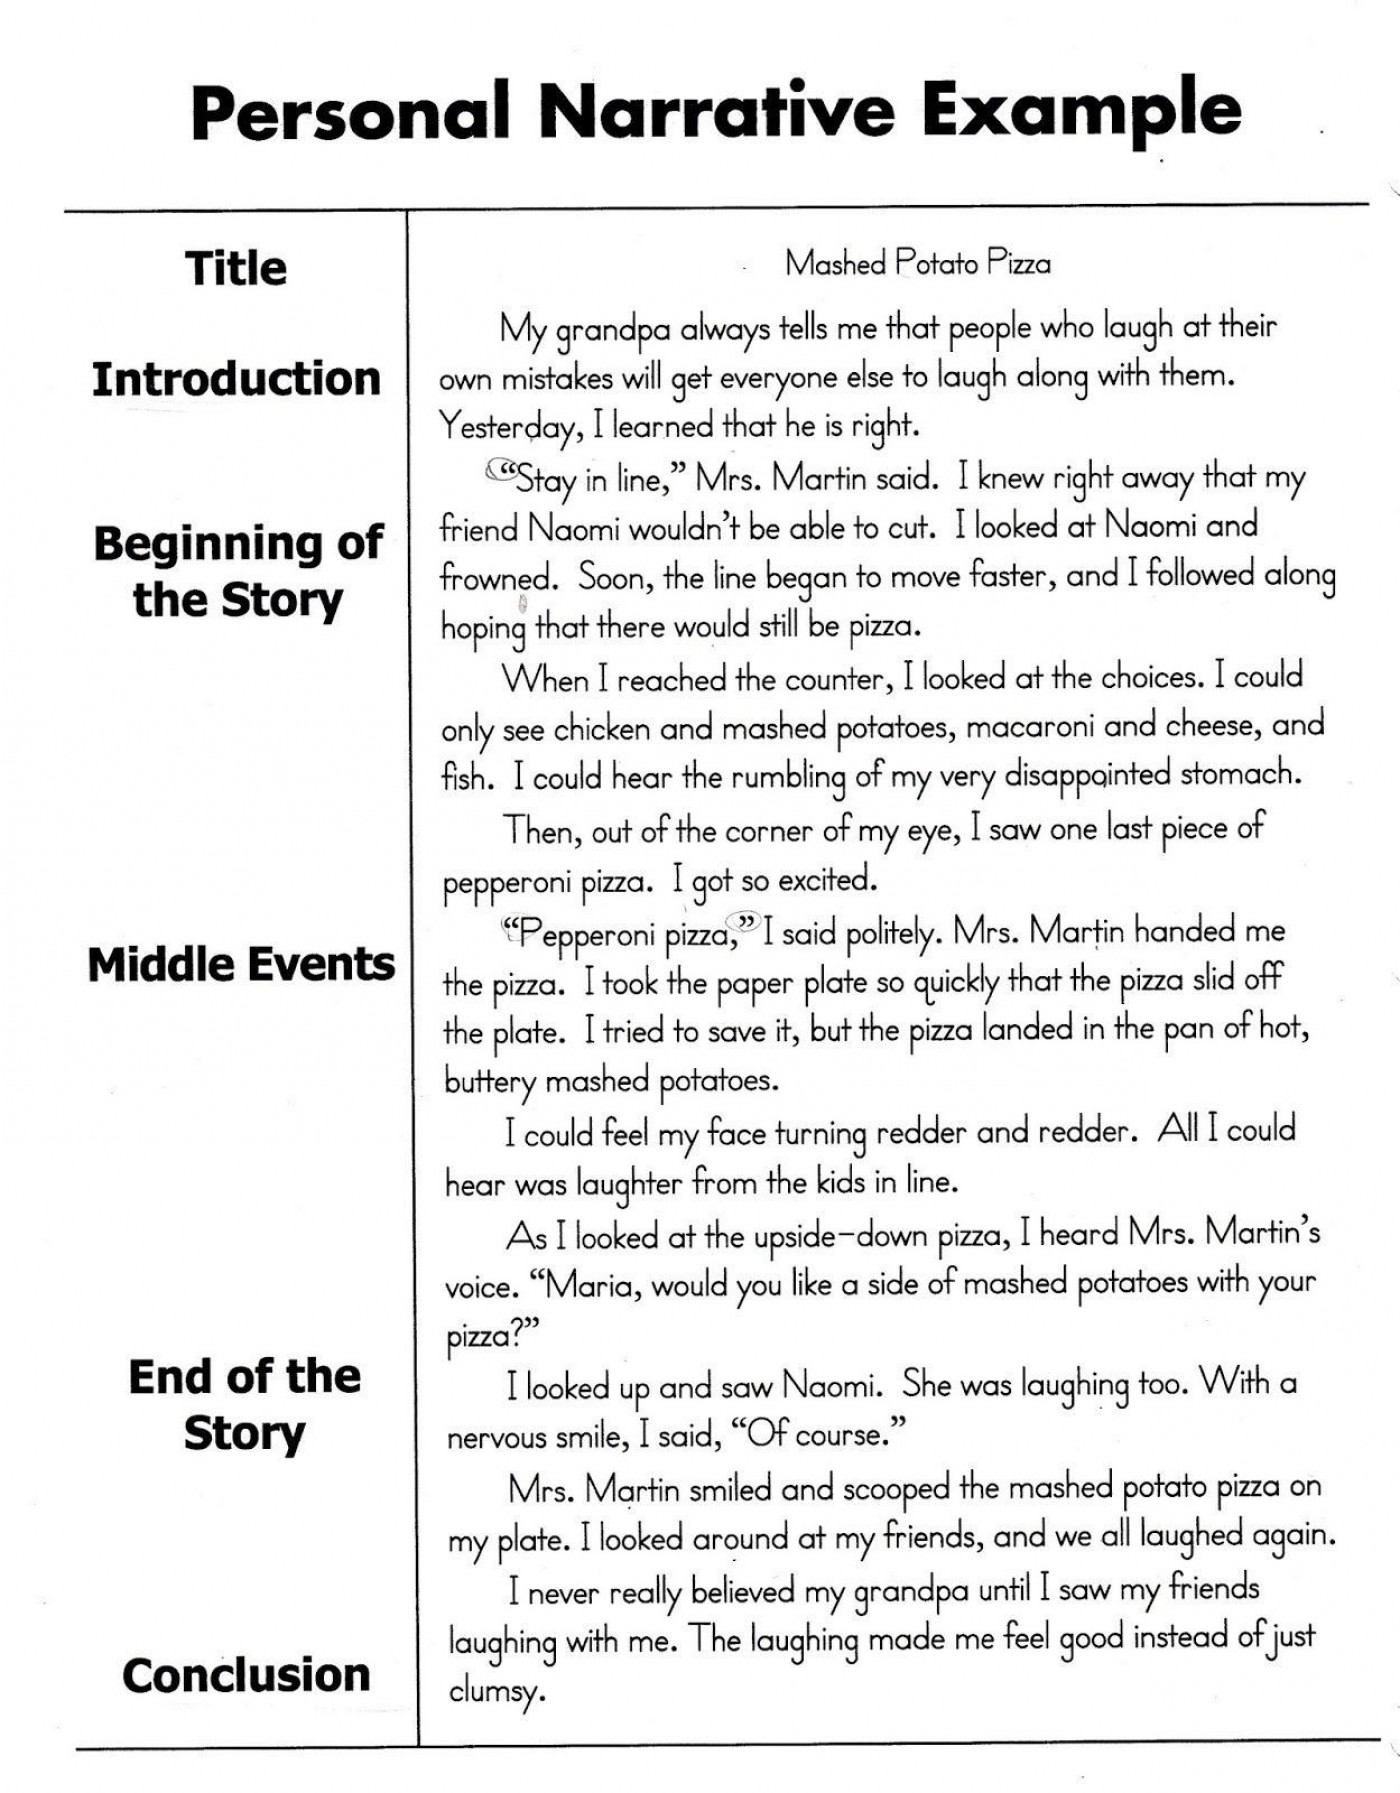 000 Unusual Personal Narrative Essay Inspiration  Structure Sample High School Prompt1400